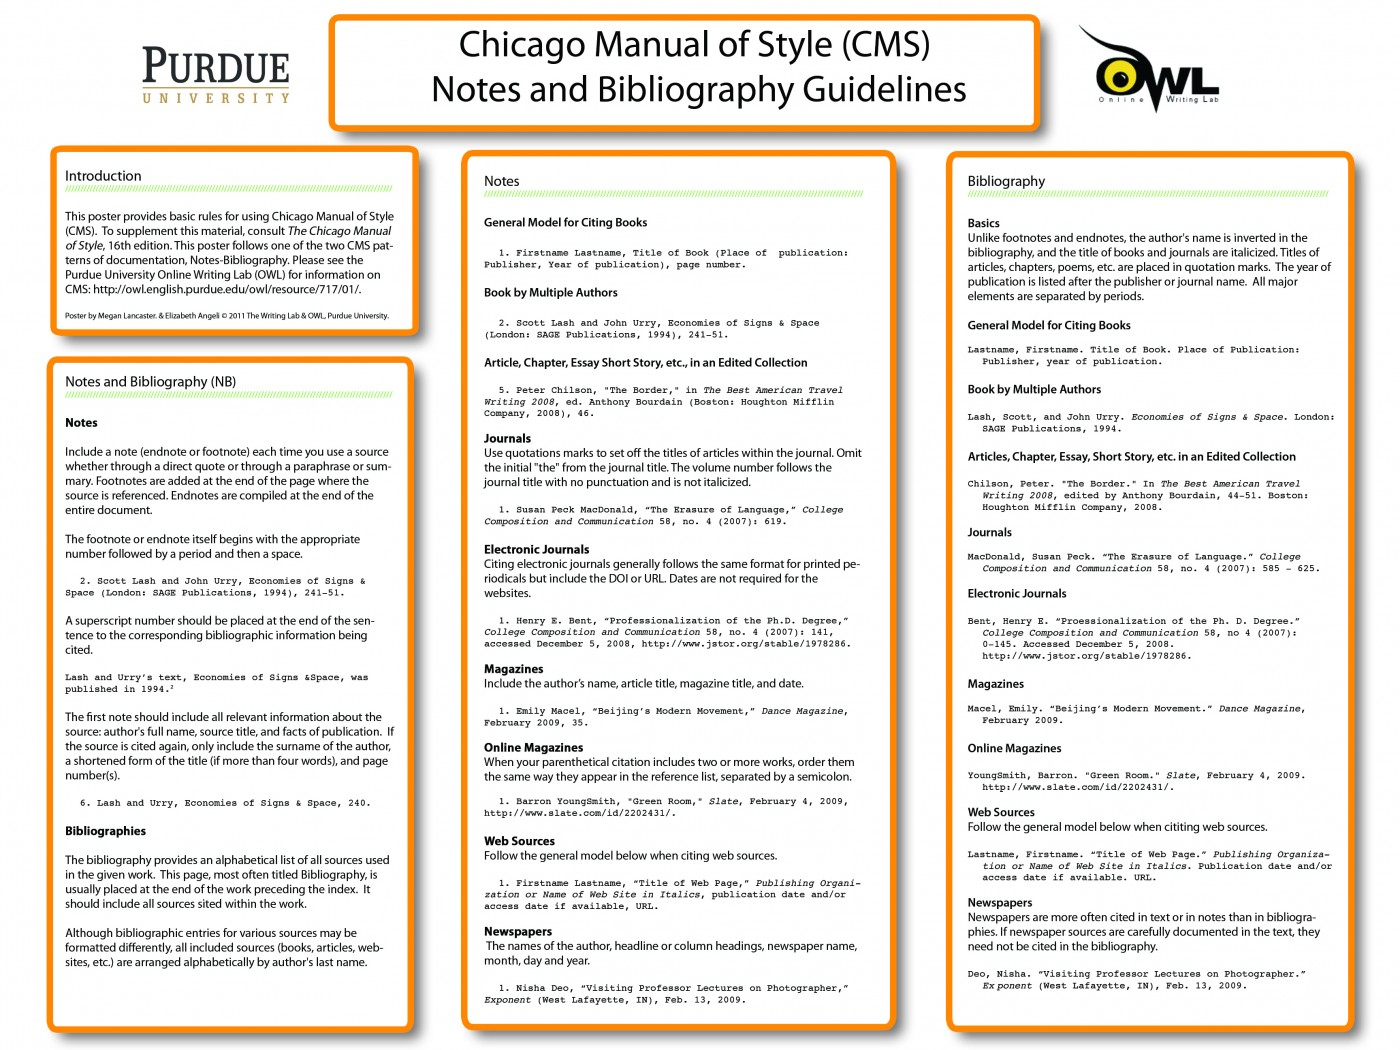 019 Essay Example Chicago Format Manual Of Style How To Write Shocking Footnotes Title Page Heading 1400